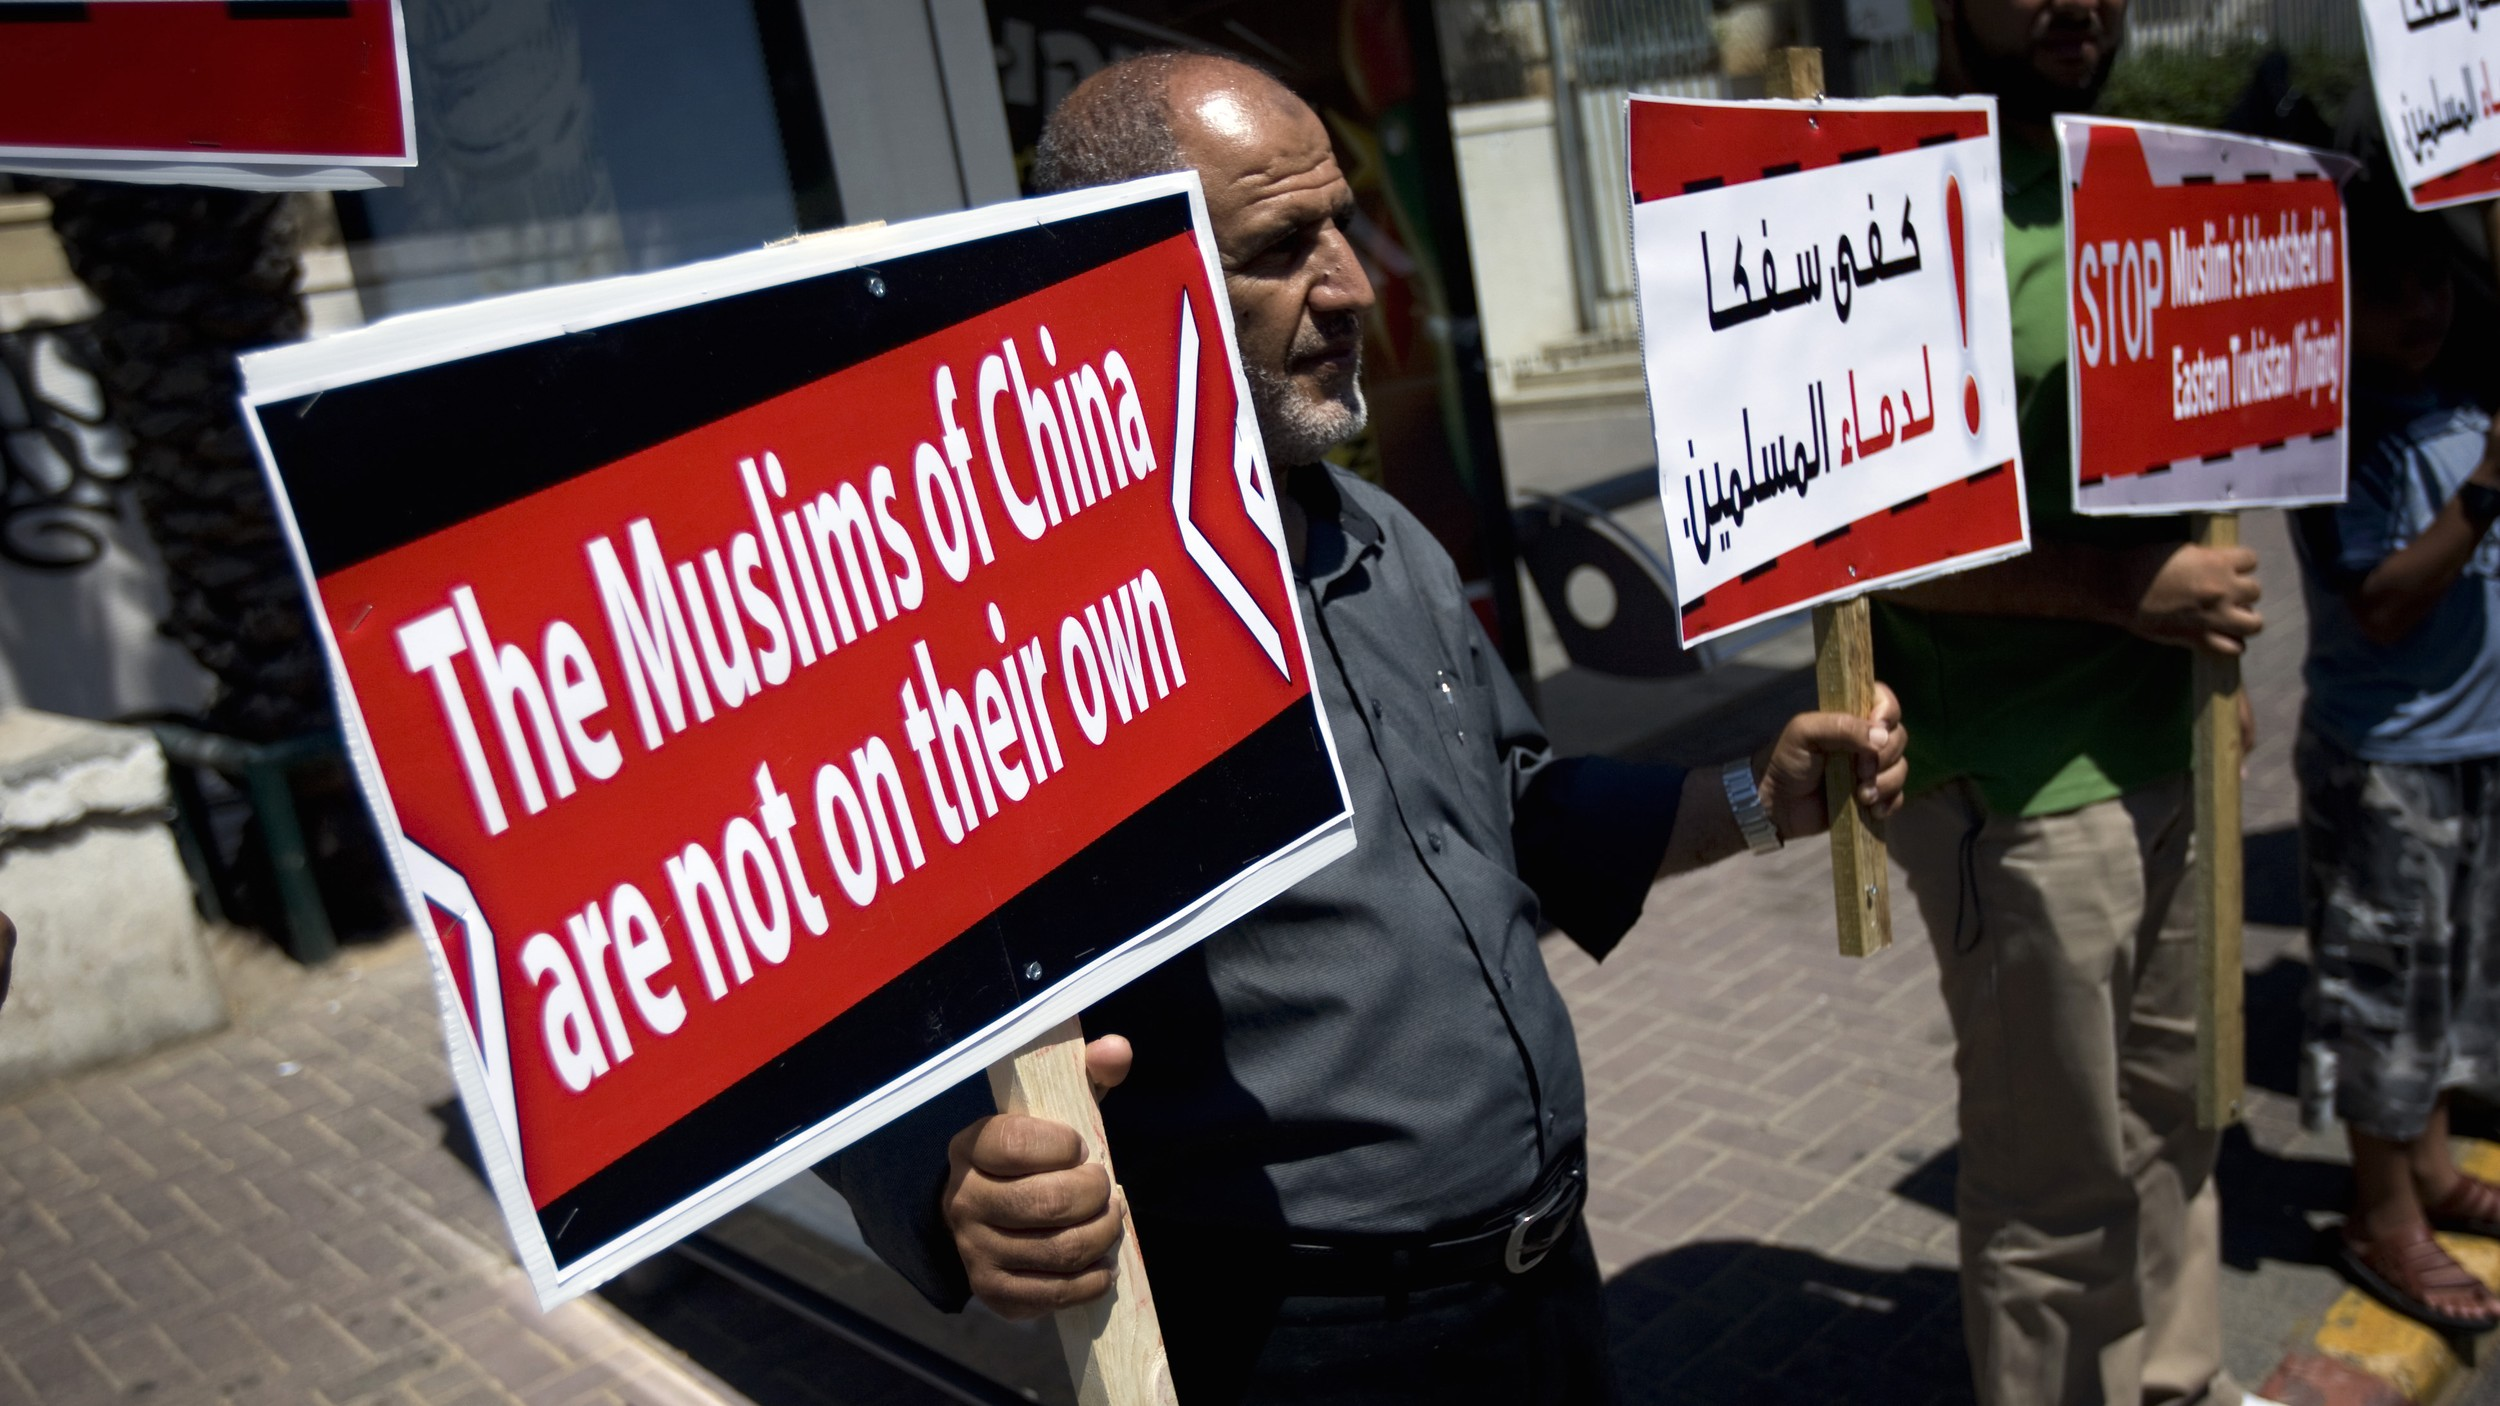 'The Jewish People Do Not Want to See the Same Happen to the Uyghurs': Israeli Activist